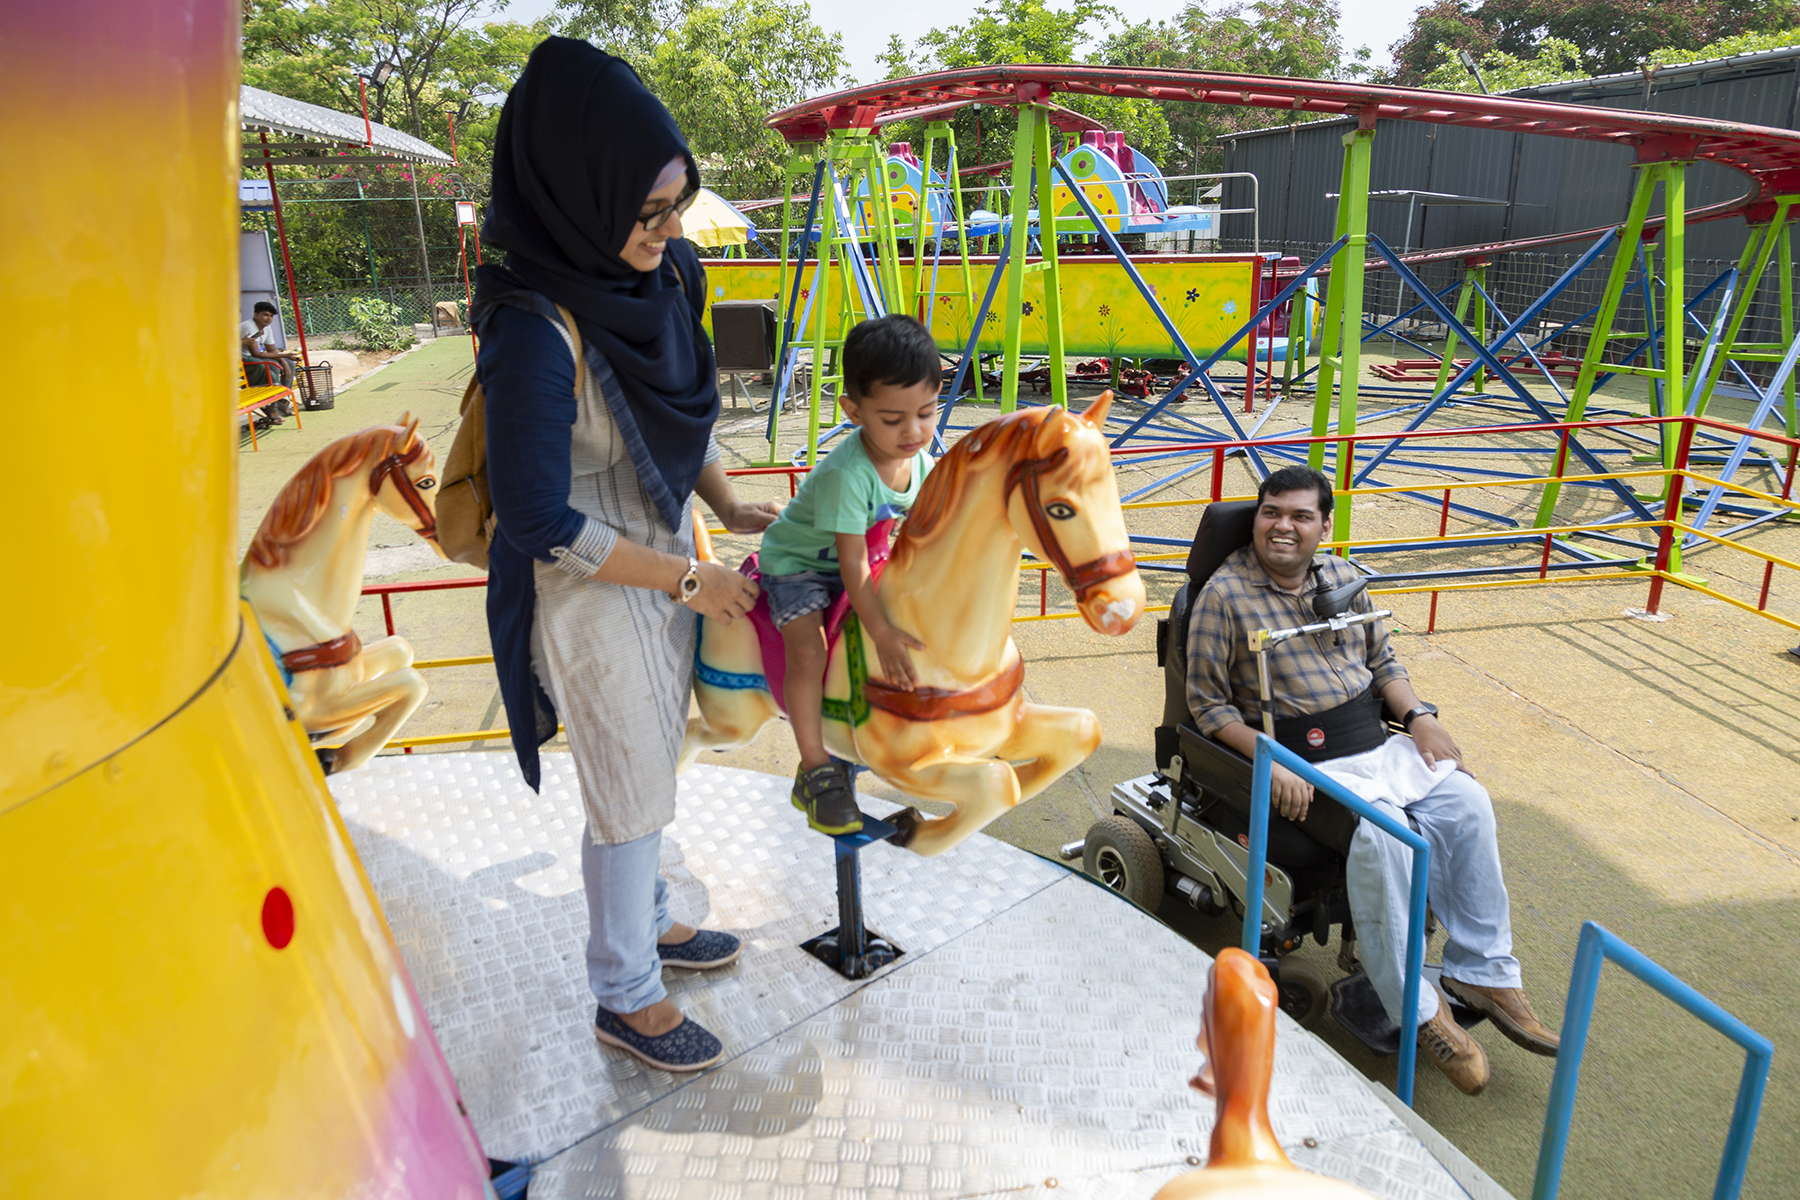 Jesfer, his wife Fathima and two-year-old son Kenzal are in a playground. Fathima and Kenzal have climbed onto a merry-go-round. Fathima wears specs with a black frame, a pale blue and grey churidar-kameez and a black shawl covering her head. She smiles as she supports Kenzal who is seated on one of the peach-coloured carousel horses. Jesfer smiles up at them from his wheelchair on the ground below. In the background is metal play equipment painted red, green, blue and yellow.